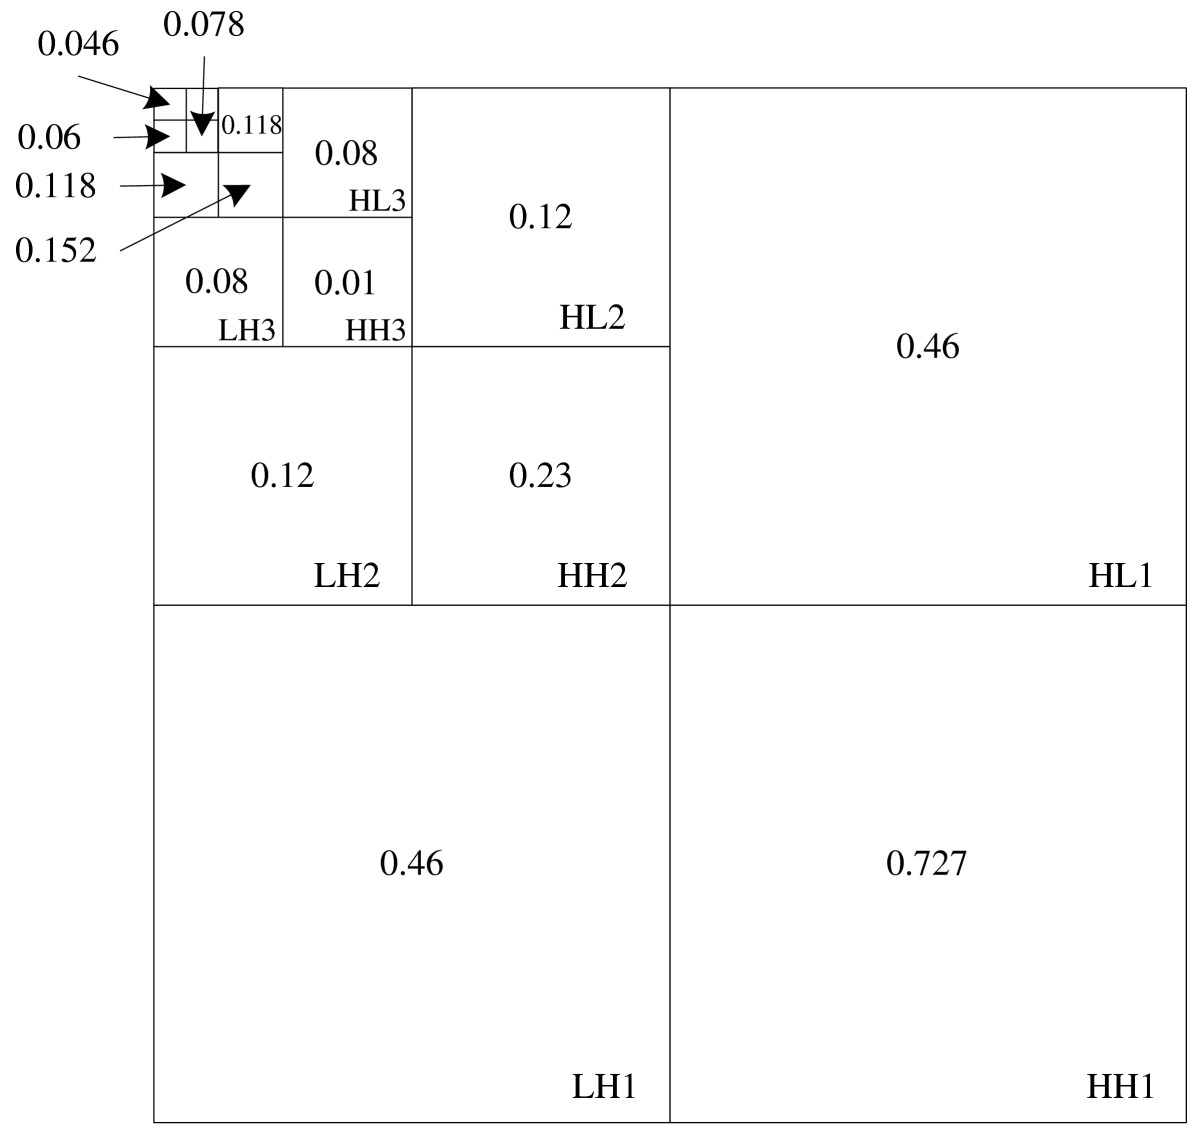 https://static-content.springer.com/image/art%3A10.1186%2F1687-6180-2011-48/MediaObjects/13634_2011_Article_55_Fig4_HTML.jpg